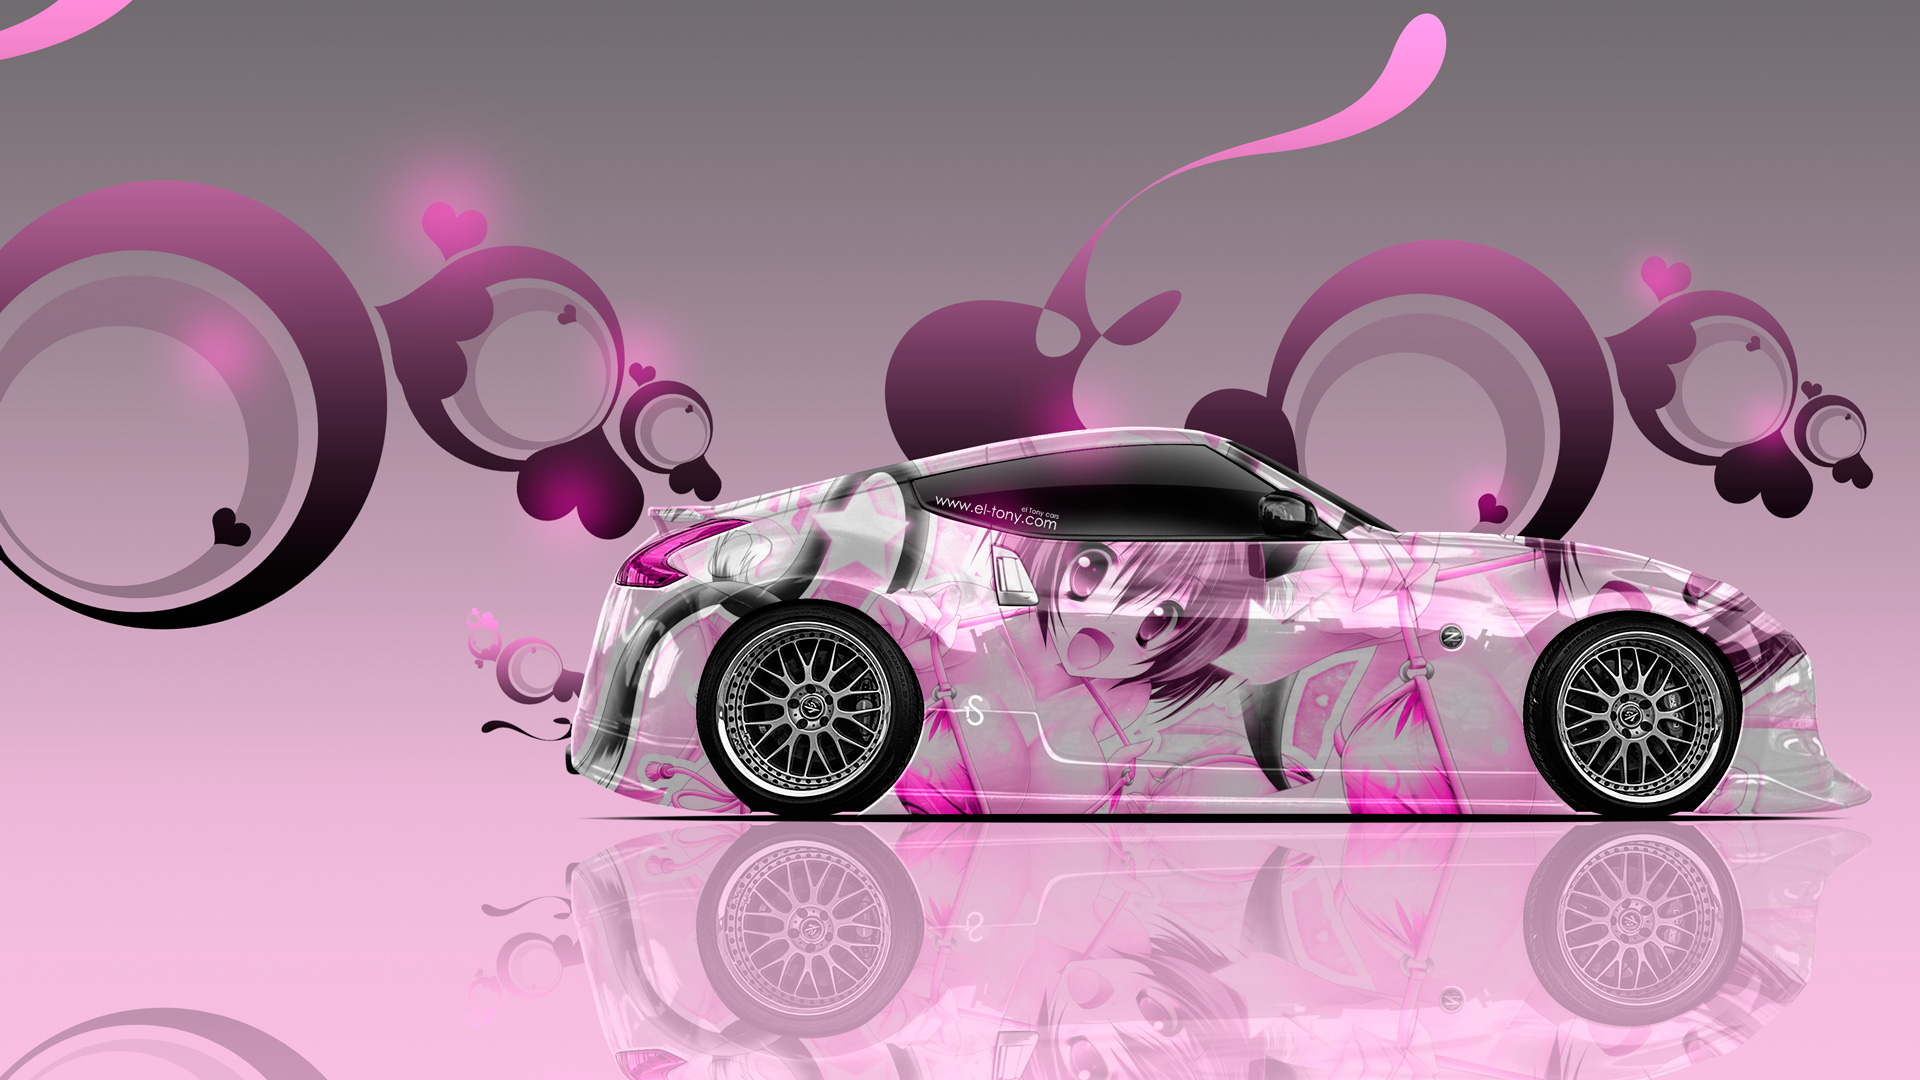 Nissan-370Z-JDM-Side-Anime-Aerography-Car-2014-Pink-Soft-Image-HD-Wallpapers-design-by-Tony-Kokhan-[www.el-tony.com]